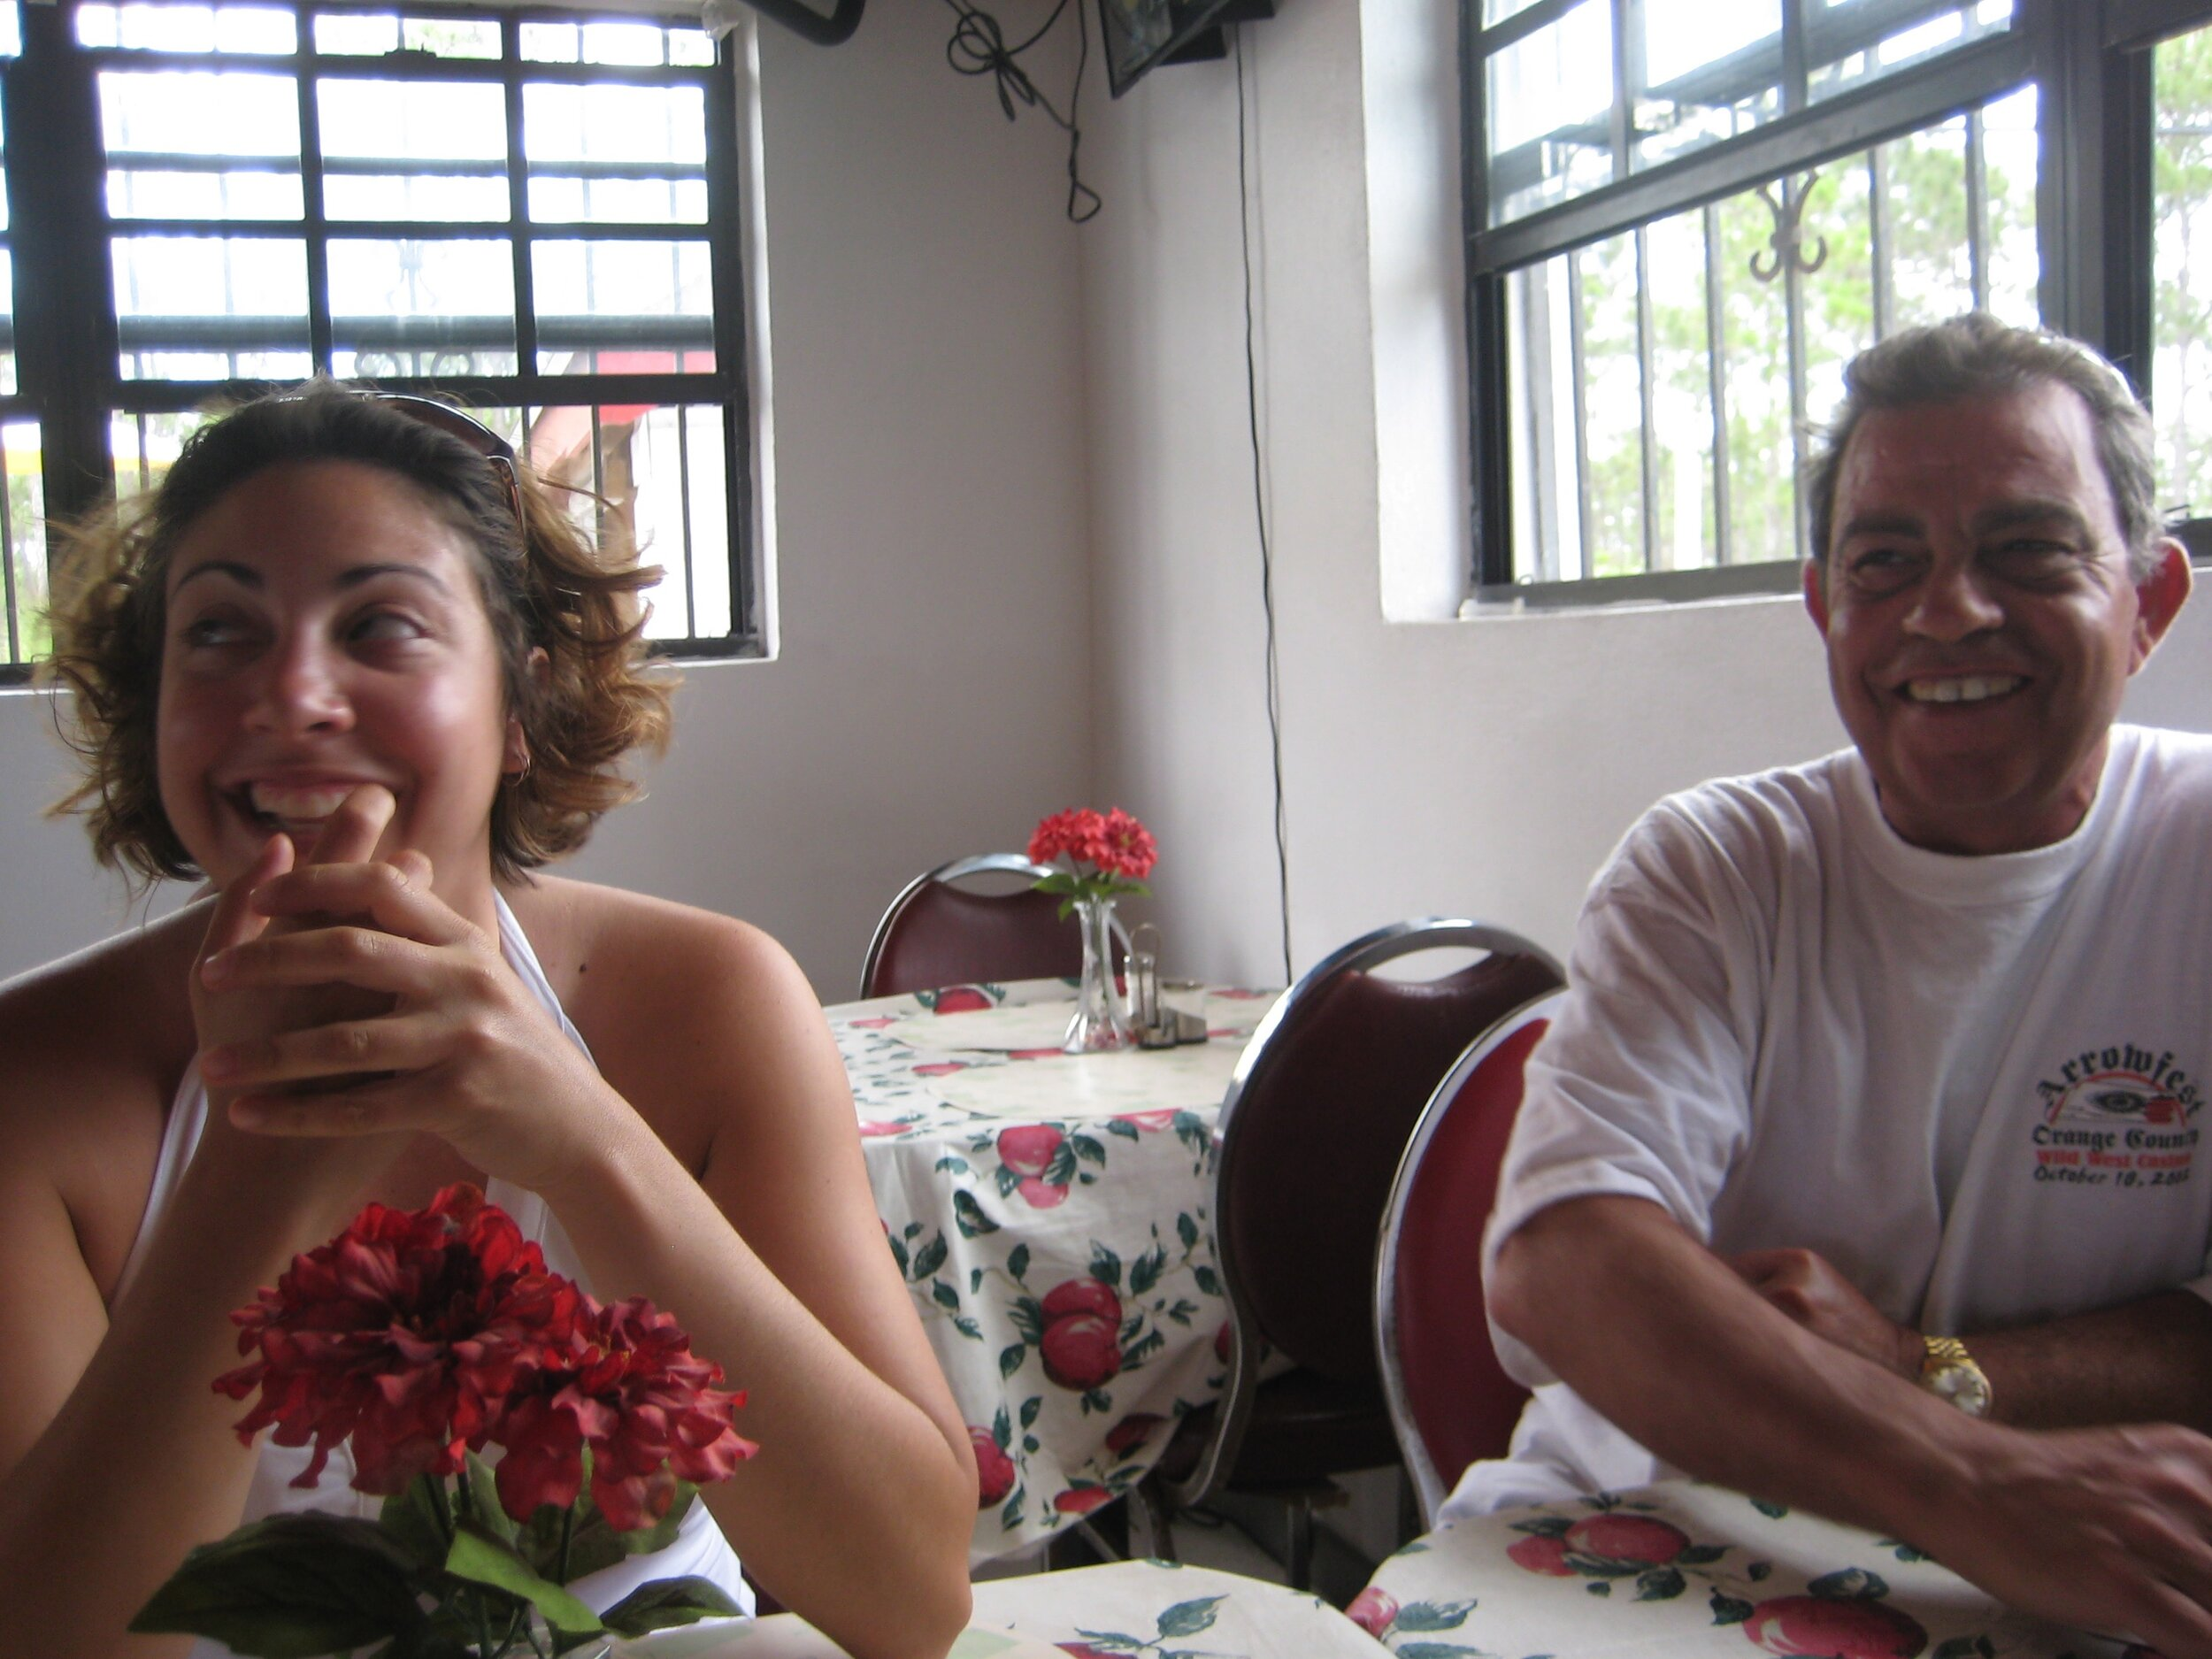 Dad and me laughing during our Bahamas vacation, May 2007.